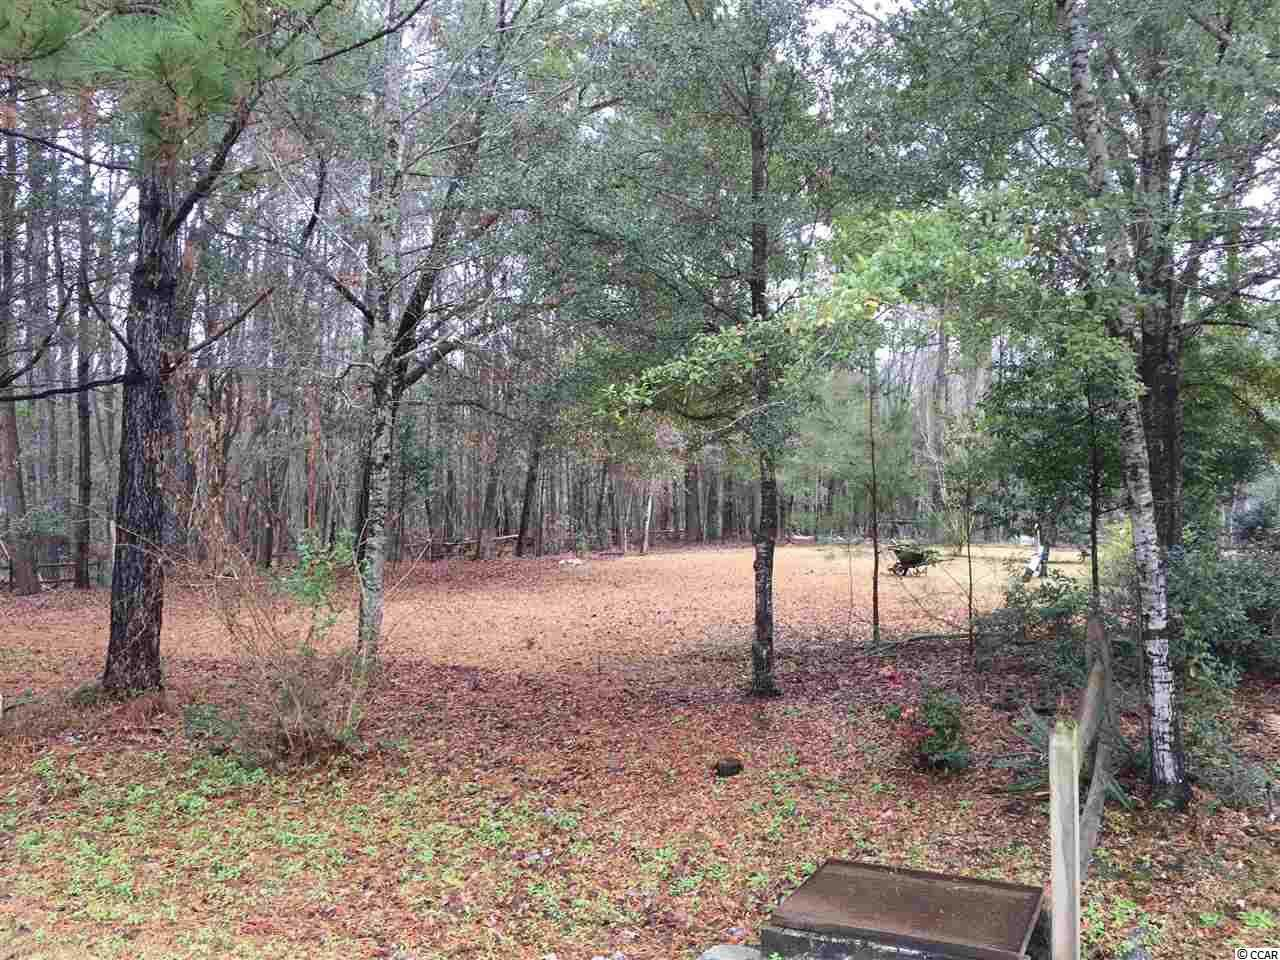 Lot 12 Red Maple Dr Pawleys Island, SC 29585 | MLS 1800794 Photo 1